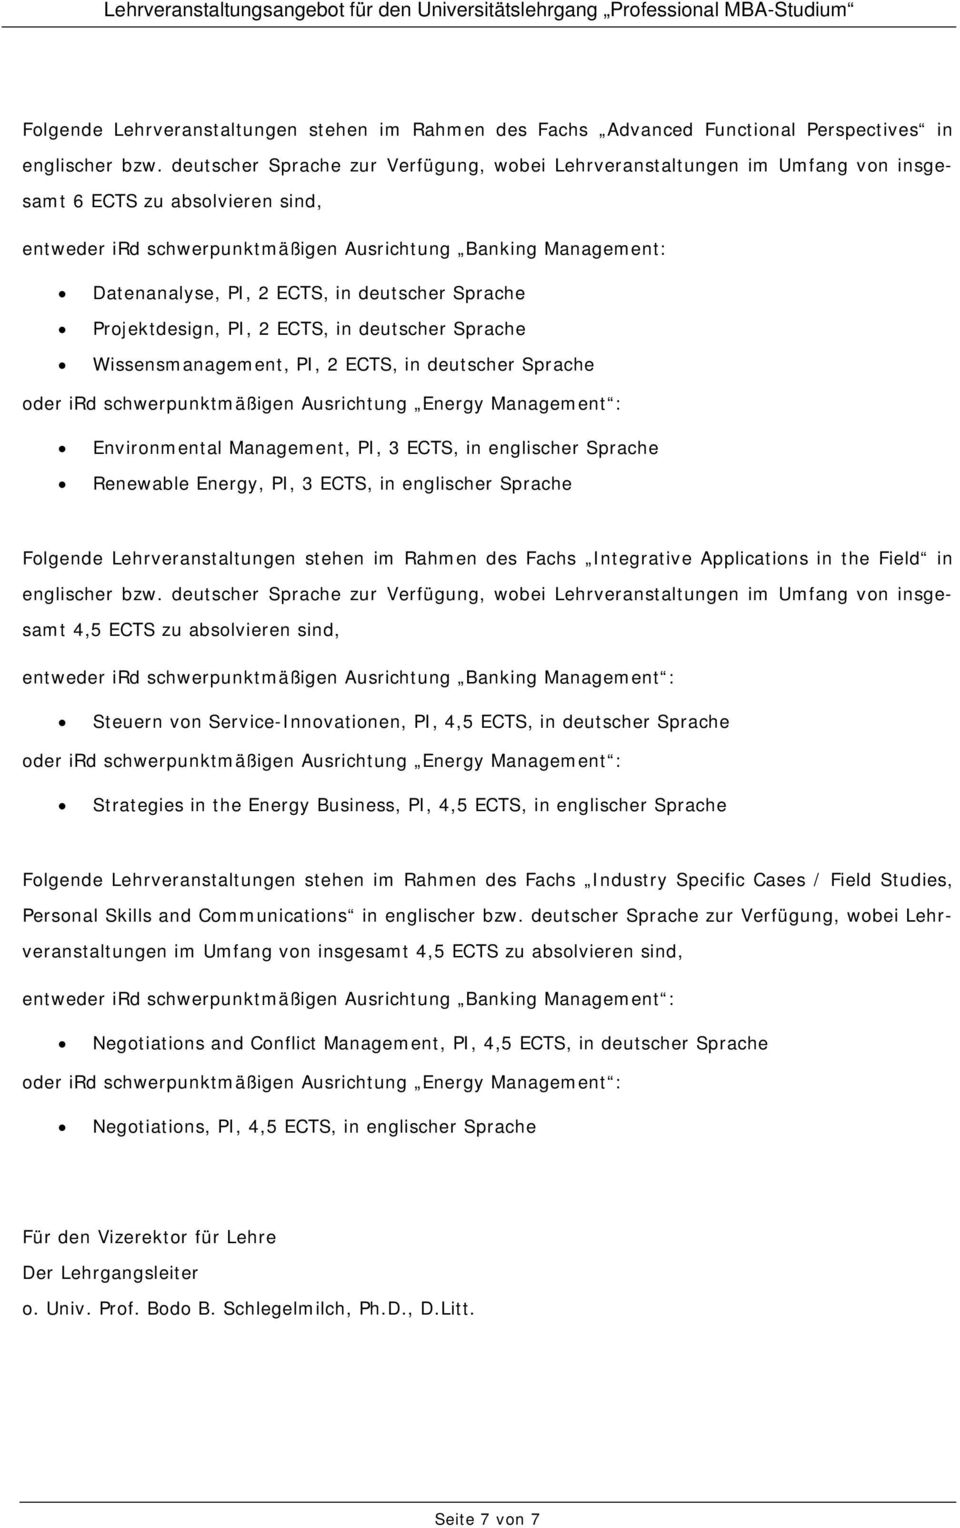 ECTS, in deutscher Sprache Projektdesign, PI, 2 ECTS, in deutscher Sprache Wissensmanagement, PI, 2 ECTS, in deutscher Sprache Environmental Management, PI, 3 ECTS, in englischer Sprache Renewable